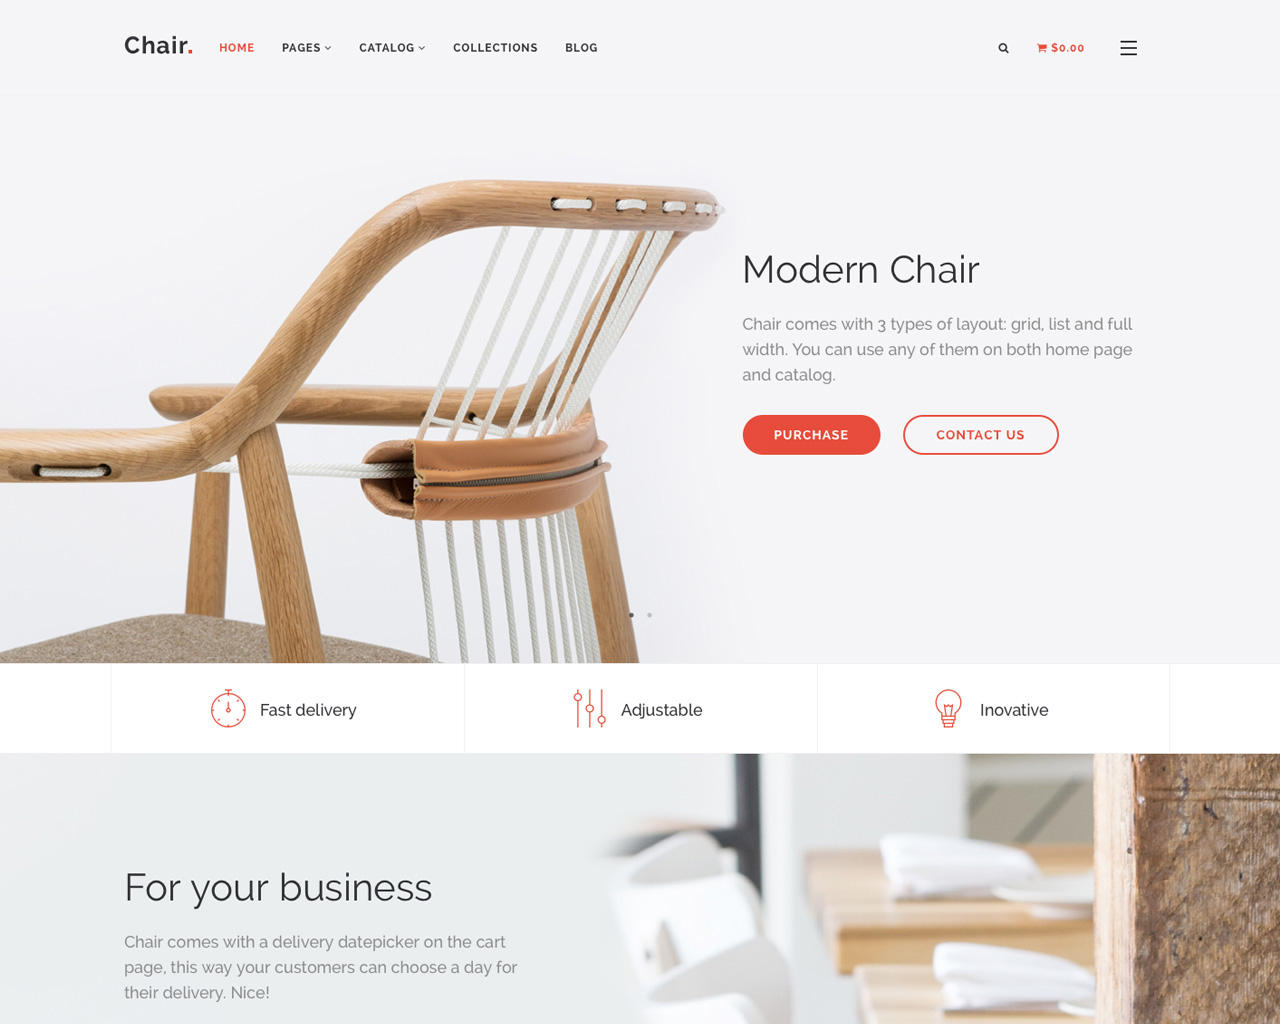 Shopify Store Setup and Customization by catalinmoraru - 101438